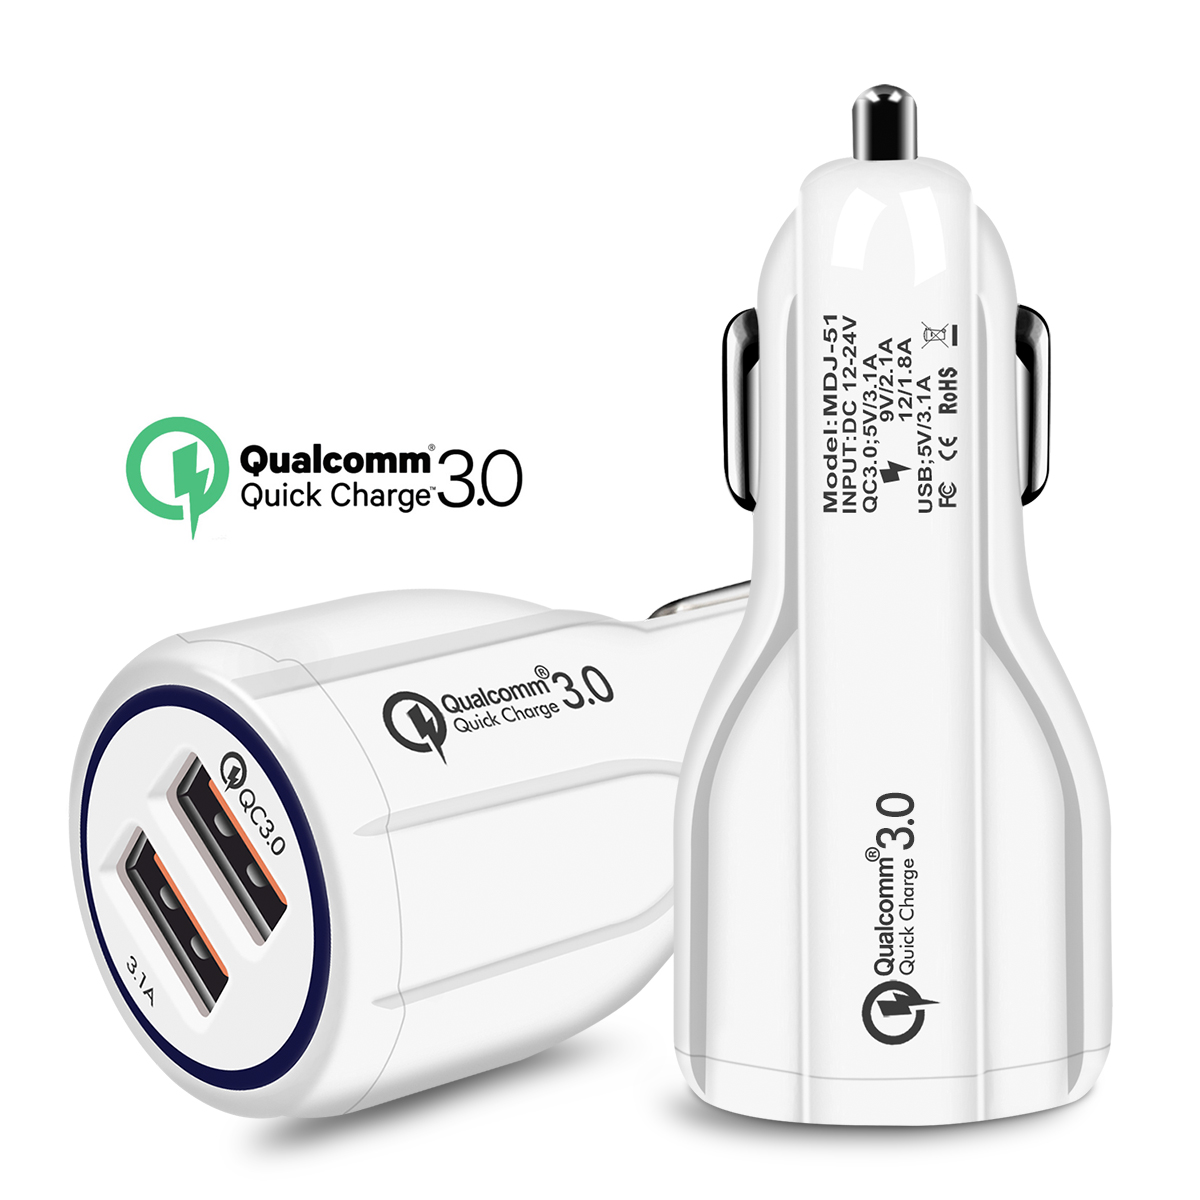 HTB1Mwfdg1OSBuNjy0Fdq6zDnVXaU - Quick Charge 3.0 Car Charger For Mobile Phone Dual Usb Car Charger Qualcomm Qc 3.0 Fast Charging Adapter Mini Usb Car Charger